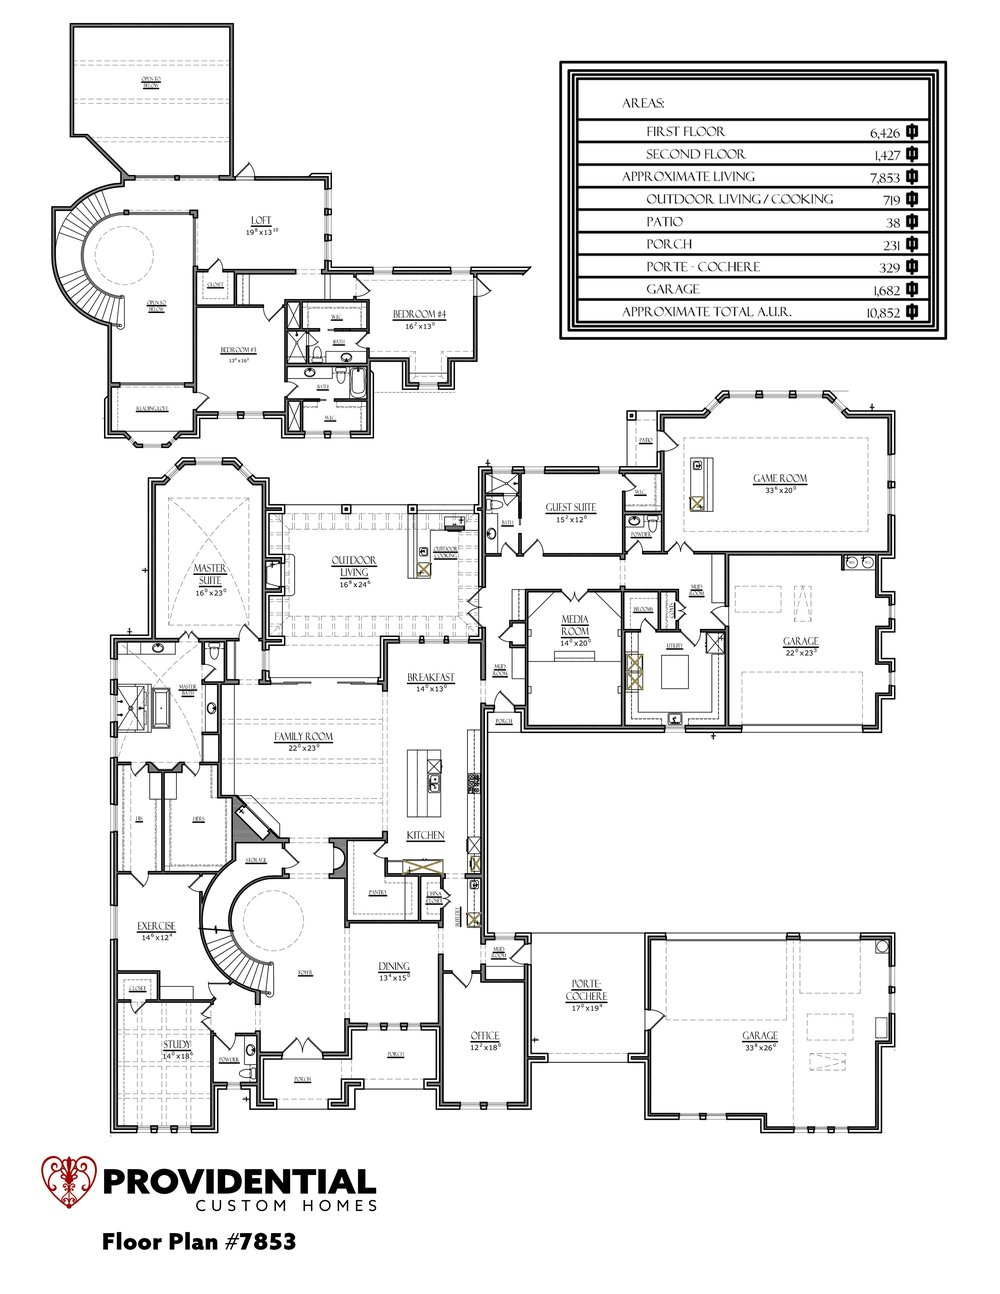 The FLOOR PLAN #7853.jpg